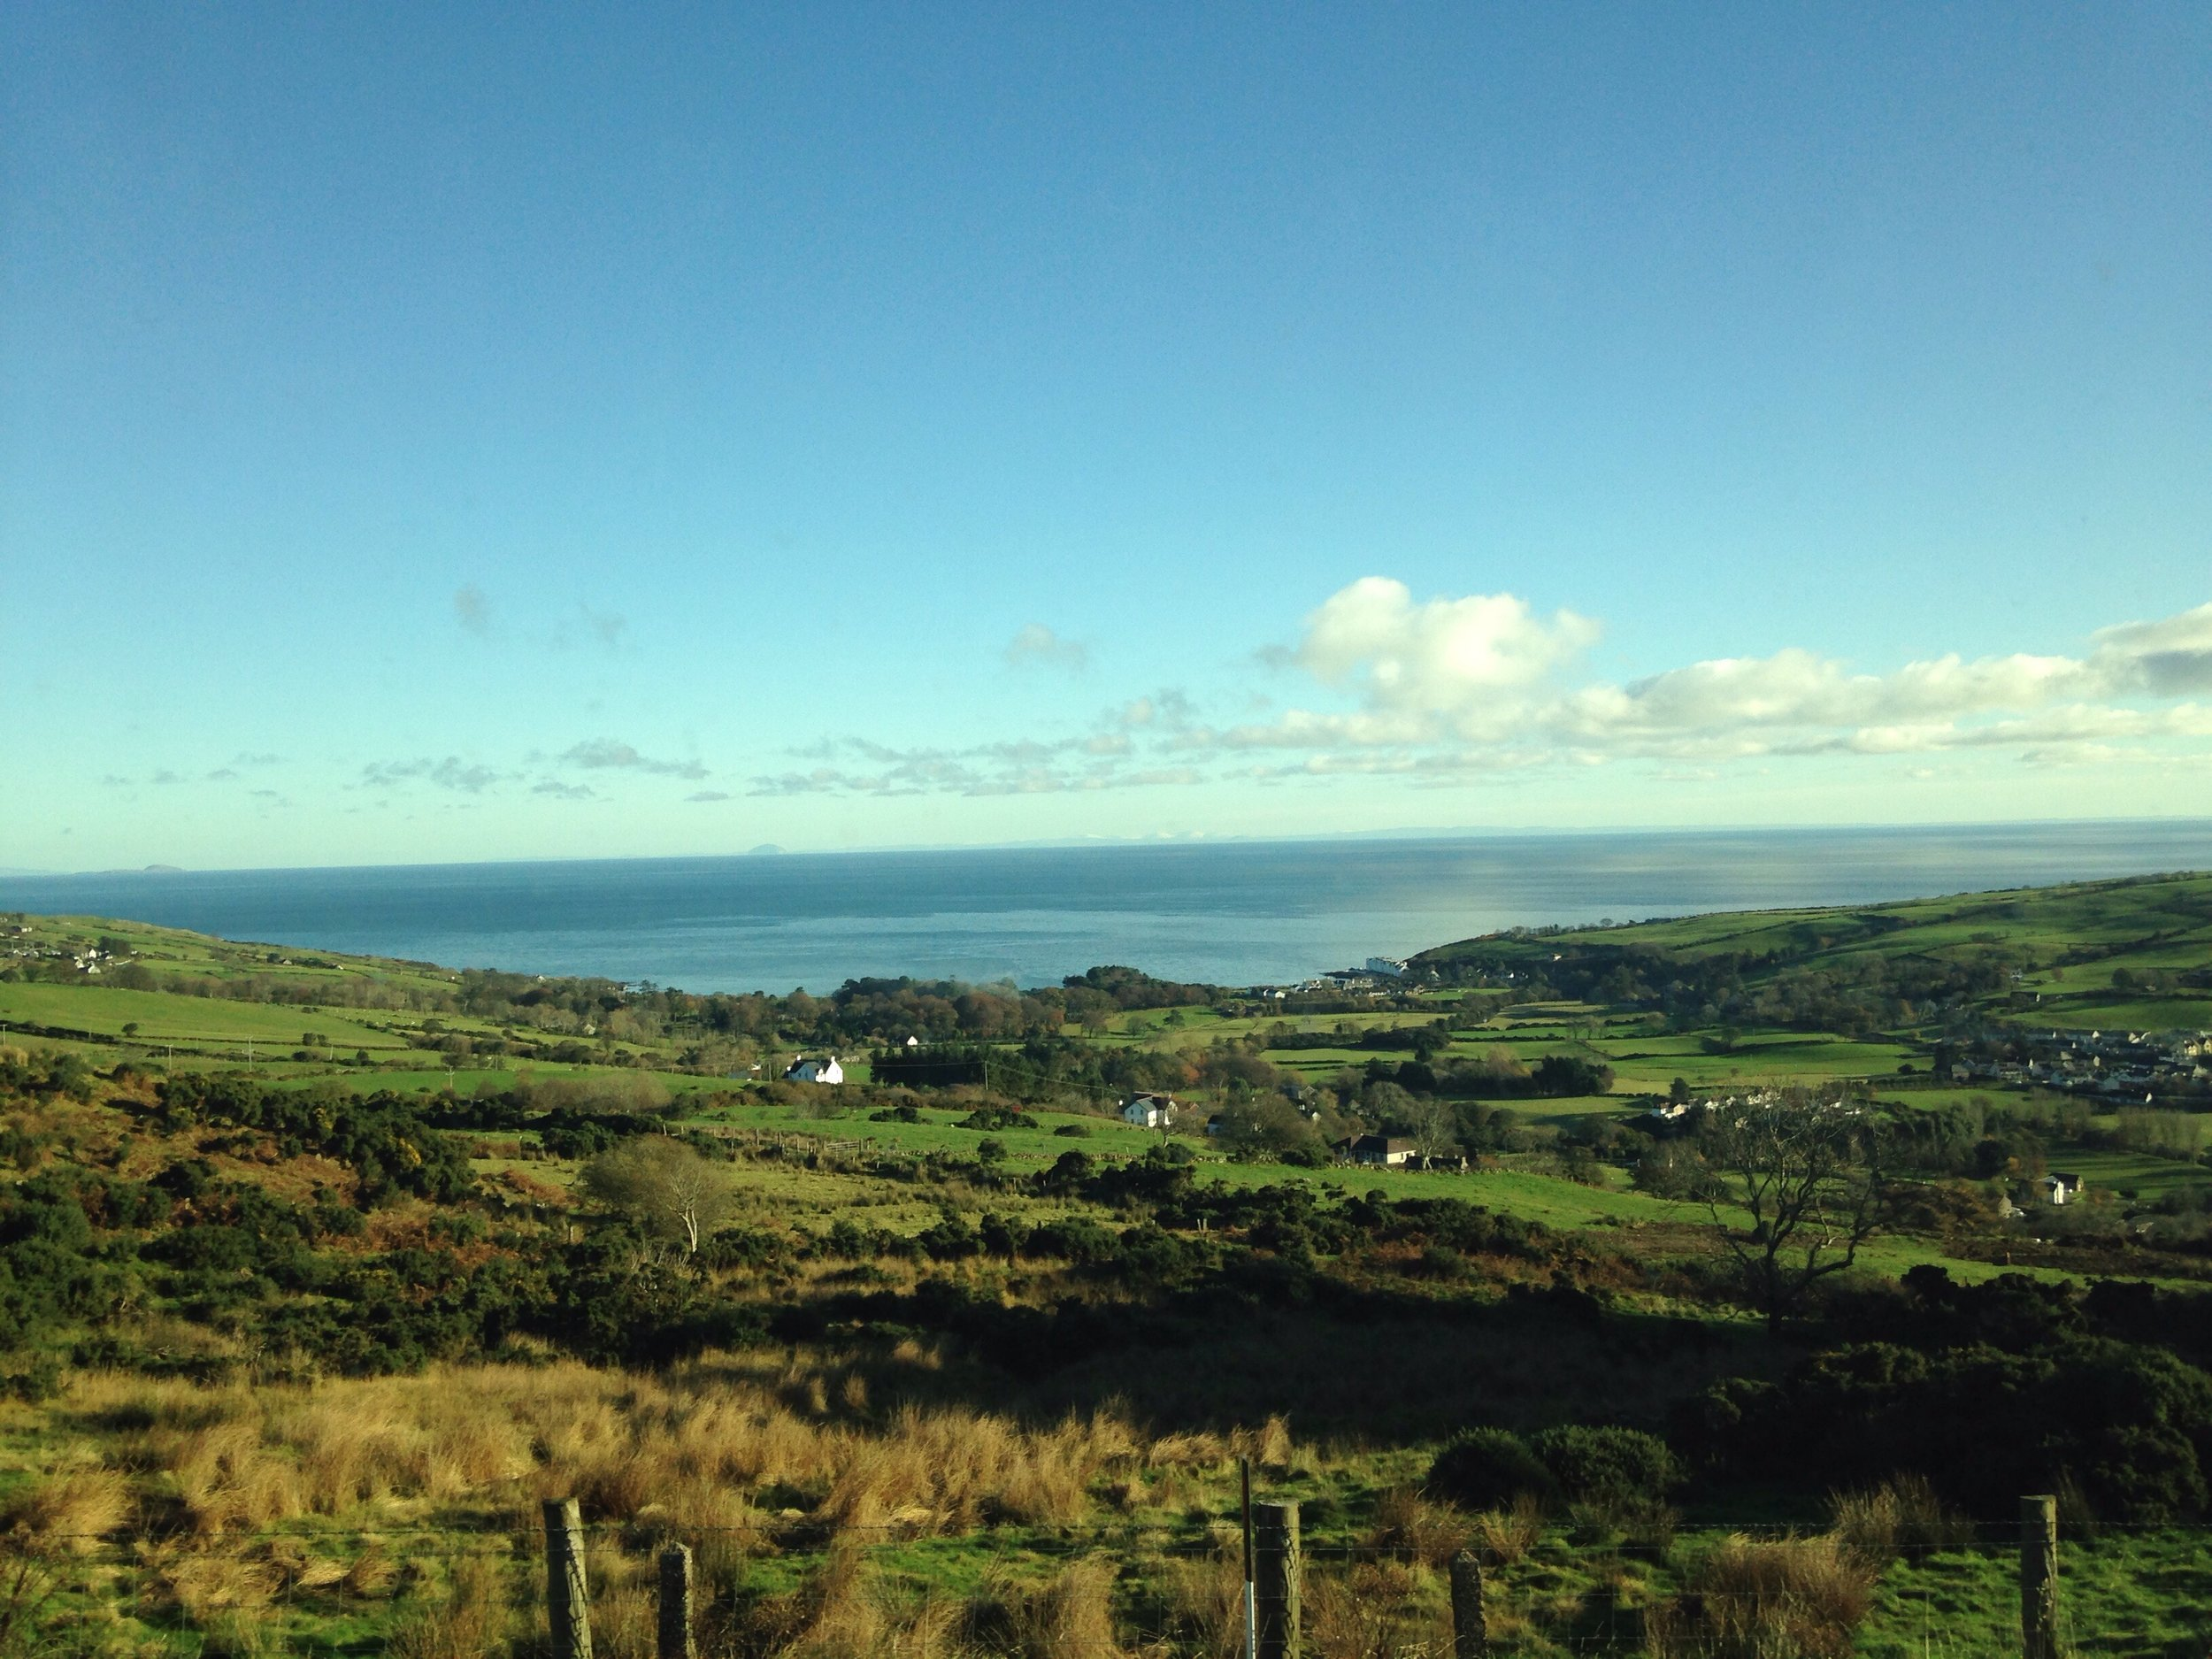 Looking out over Northern Ireland. © E.A. Crunden